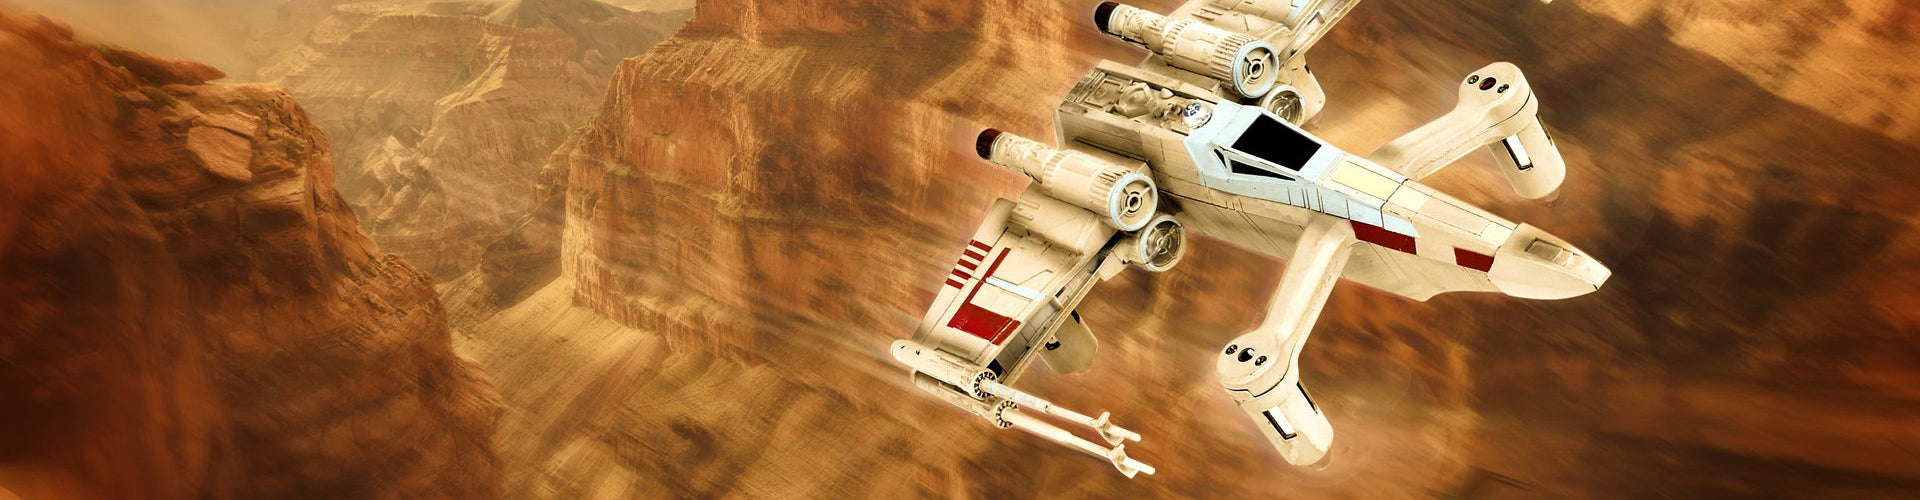 Propel - Star Wars App-Enabled Battle Drones